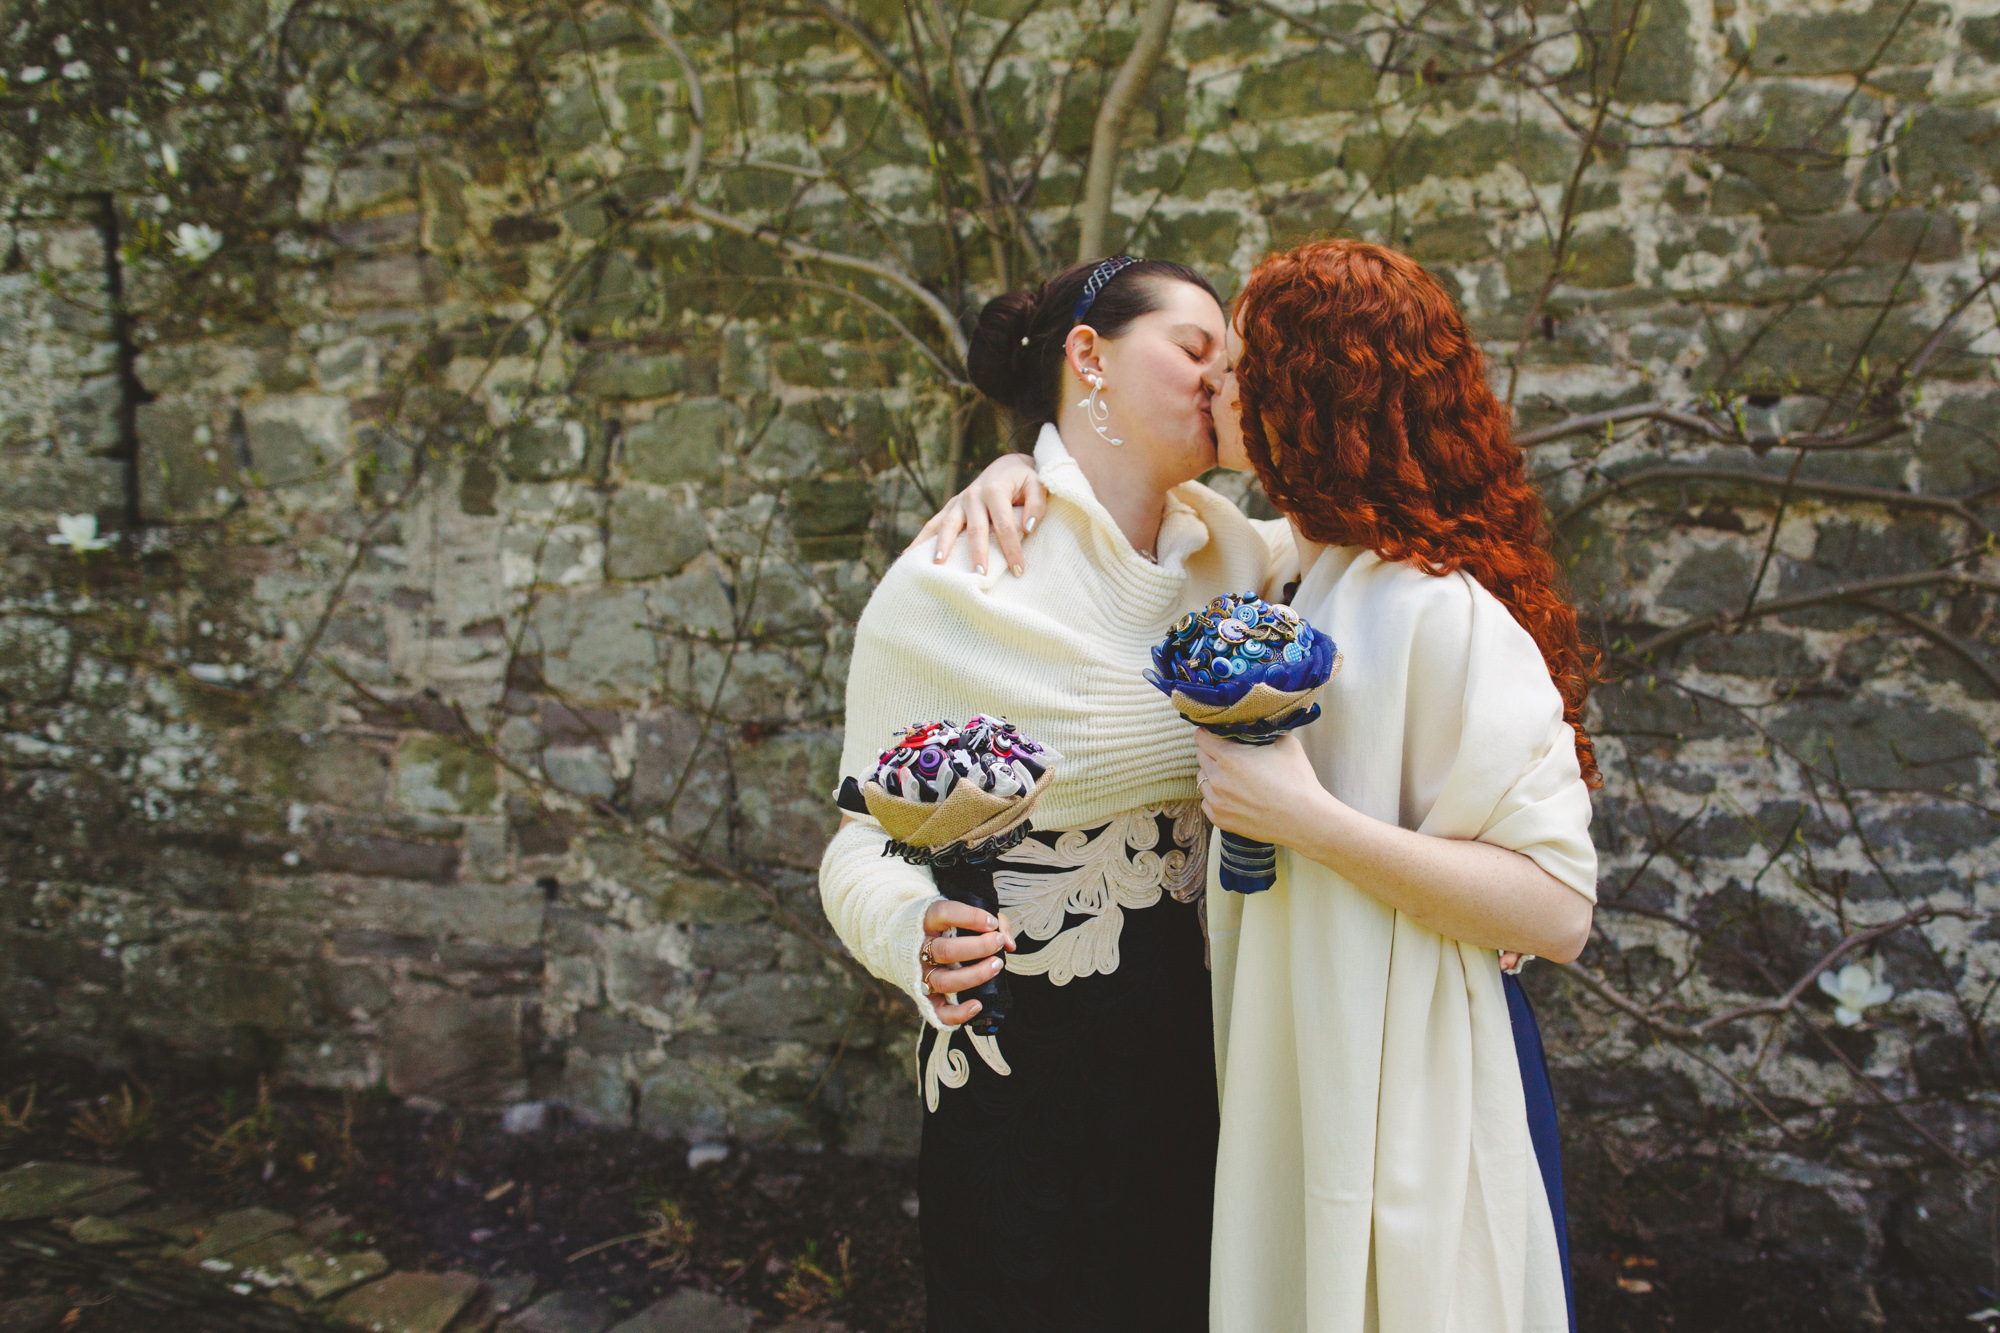 usk-castle-alternative-wedding-photographer-uk-camera-hannah-7.jpg